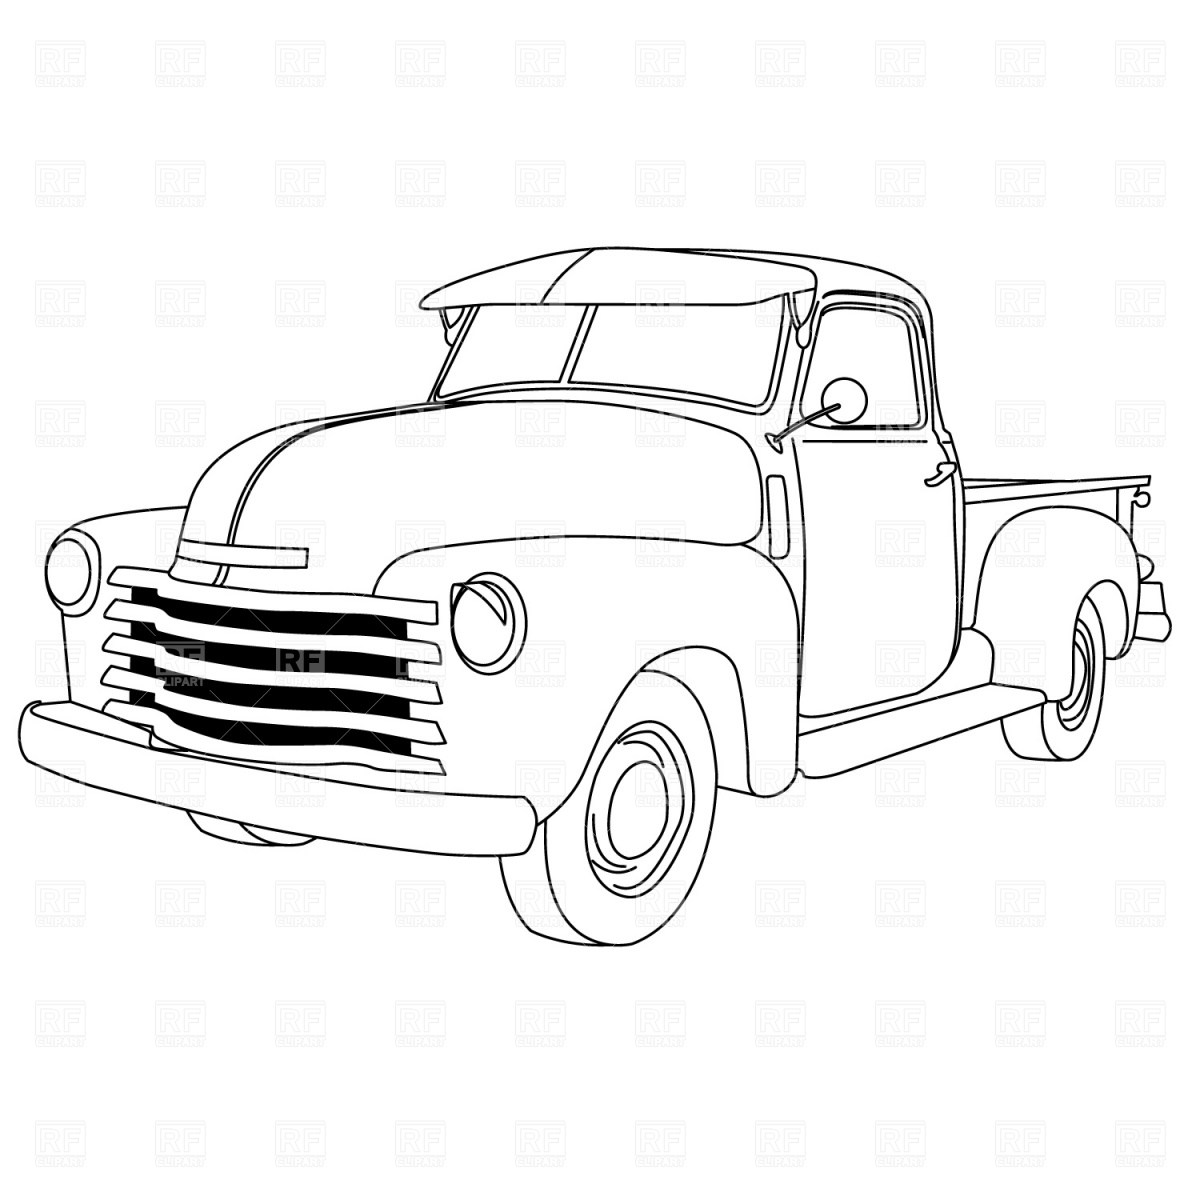 Old truck clipart black and white 3 » Clipart Portal.